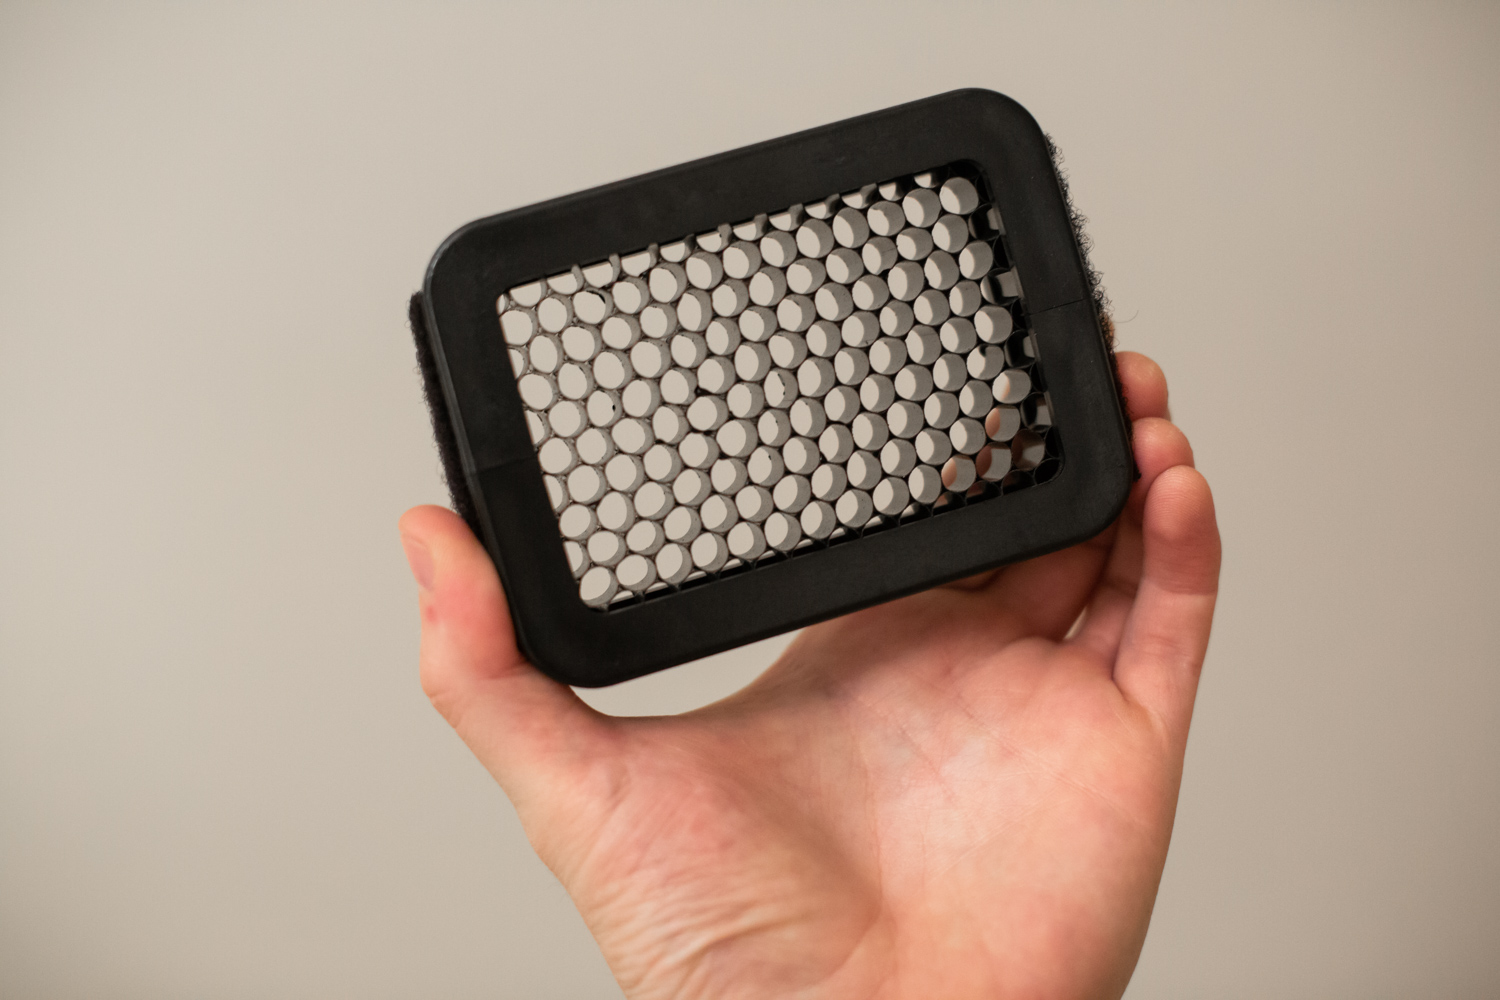 A grid modifier for speed light flashes